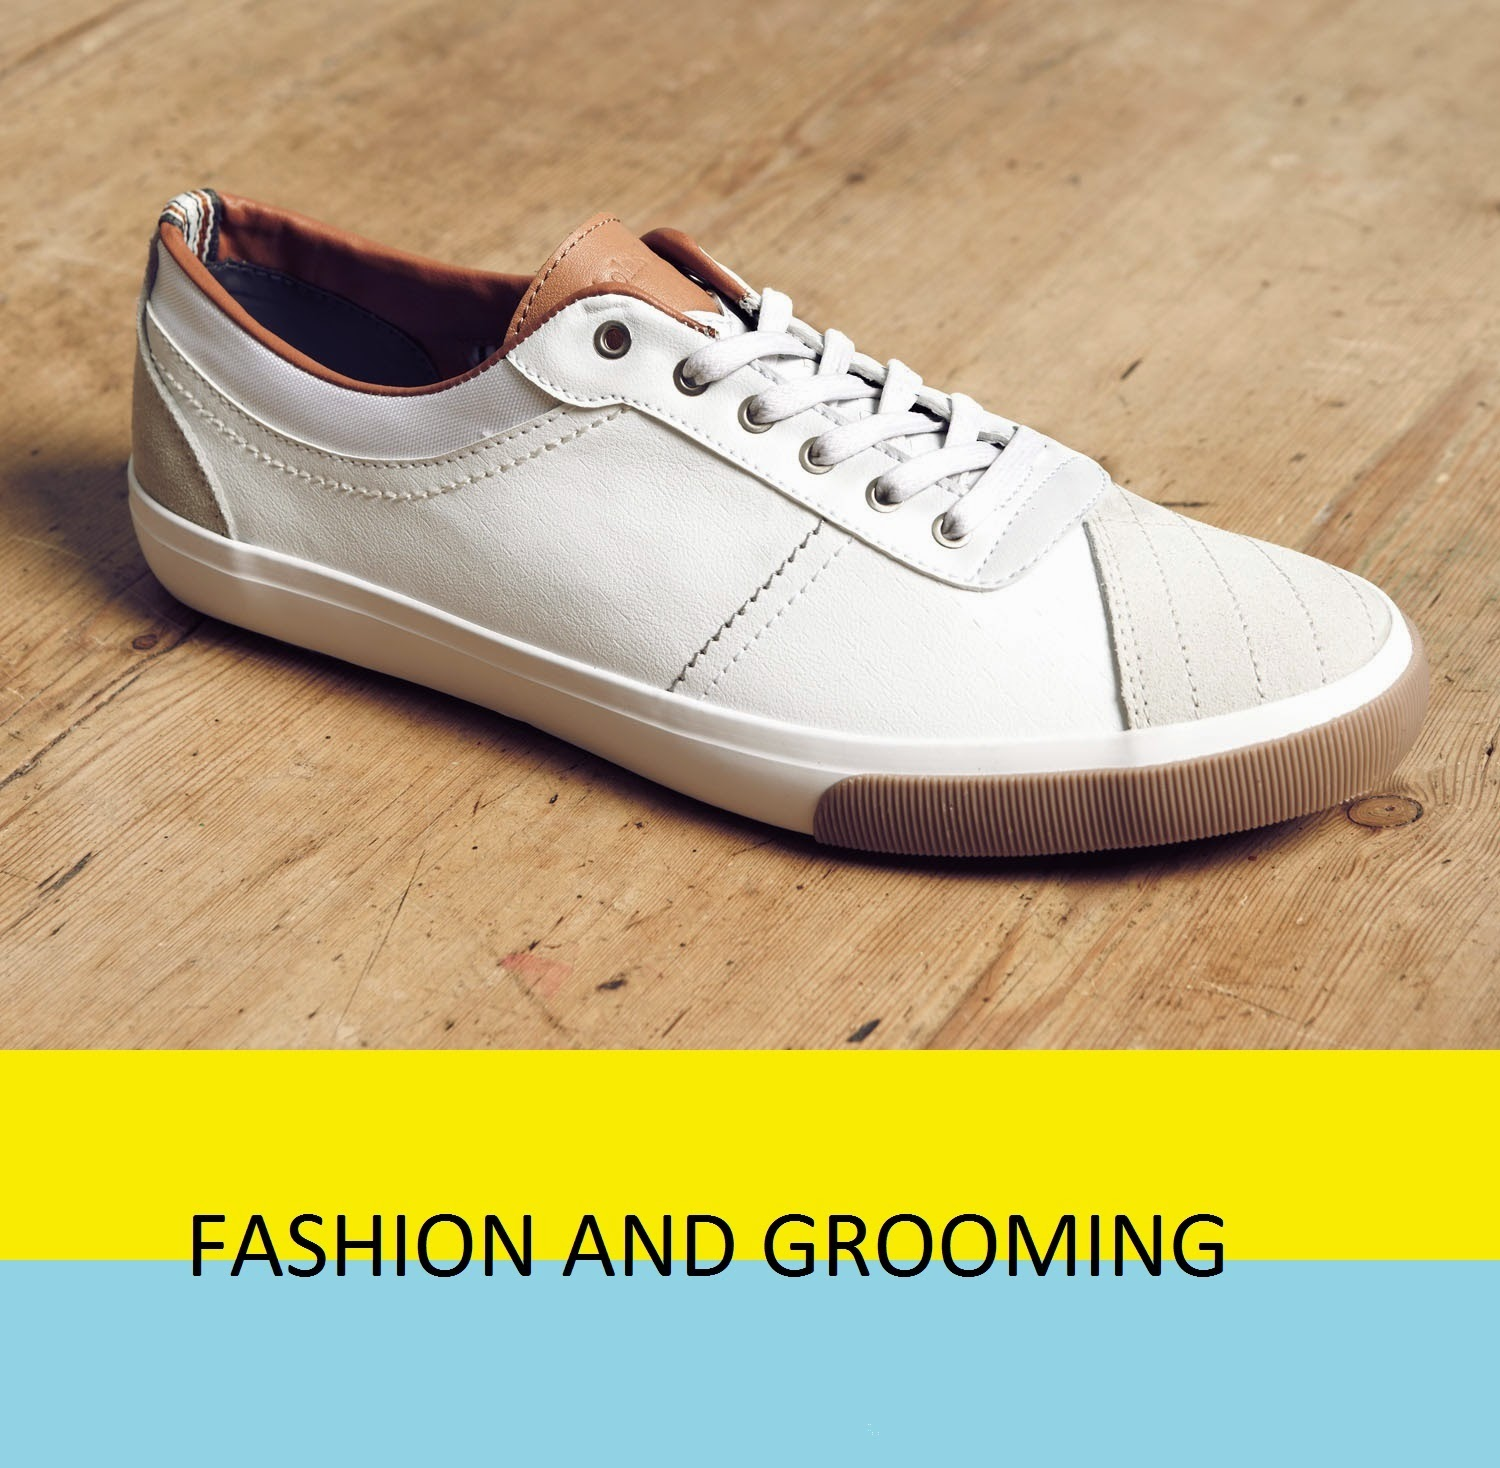 Men's Fashion and Grooming